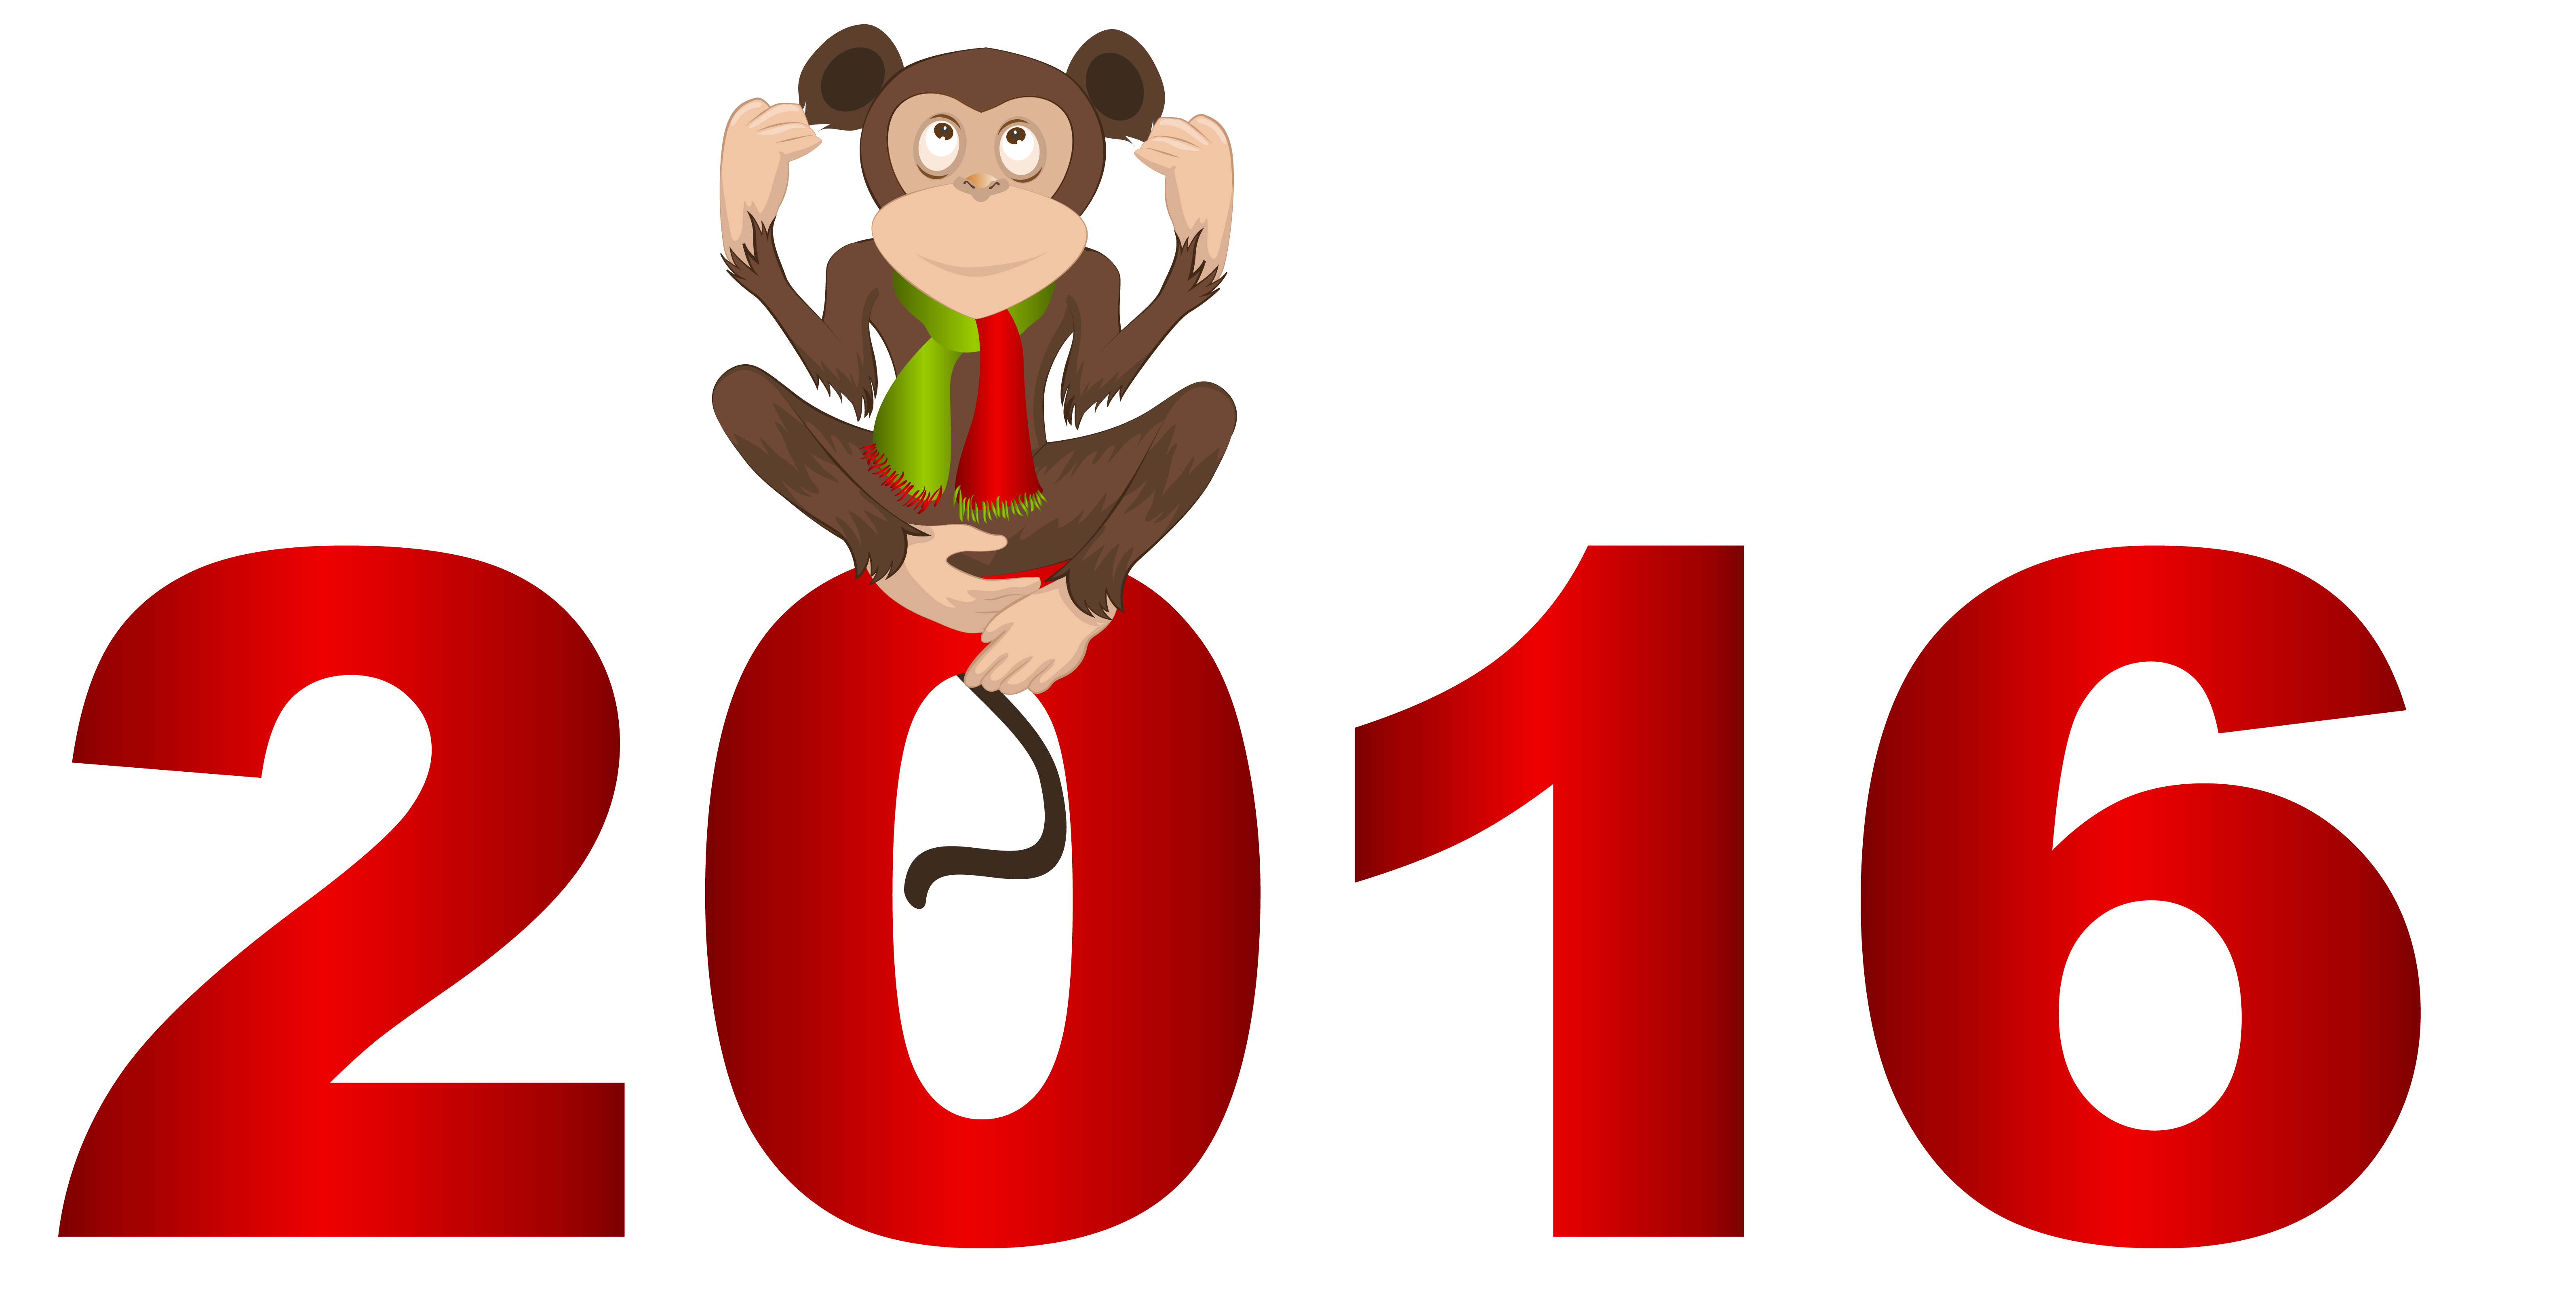 with monkey png. 2016 clipart image